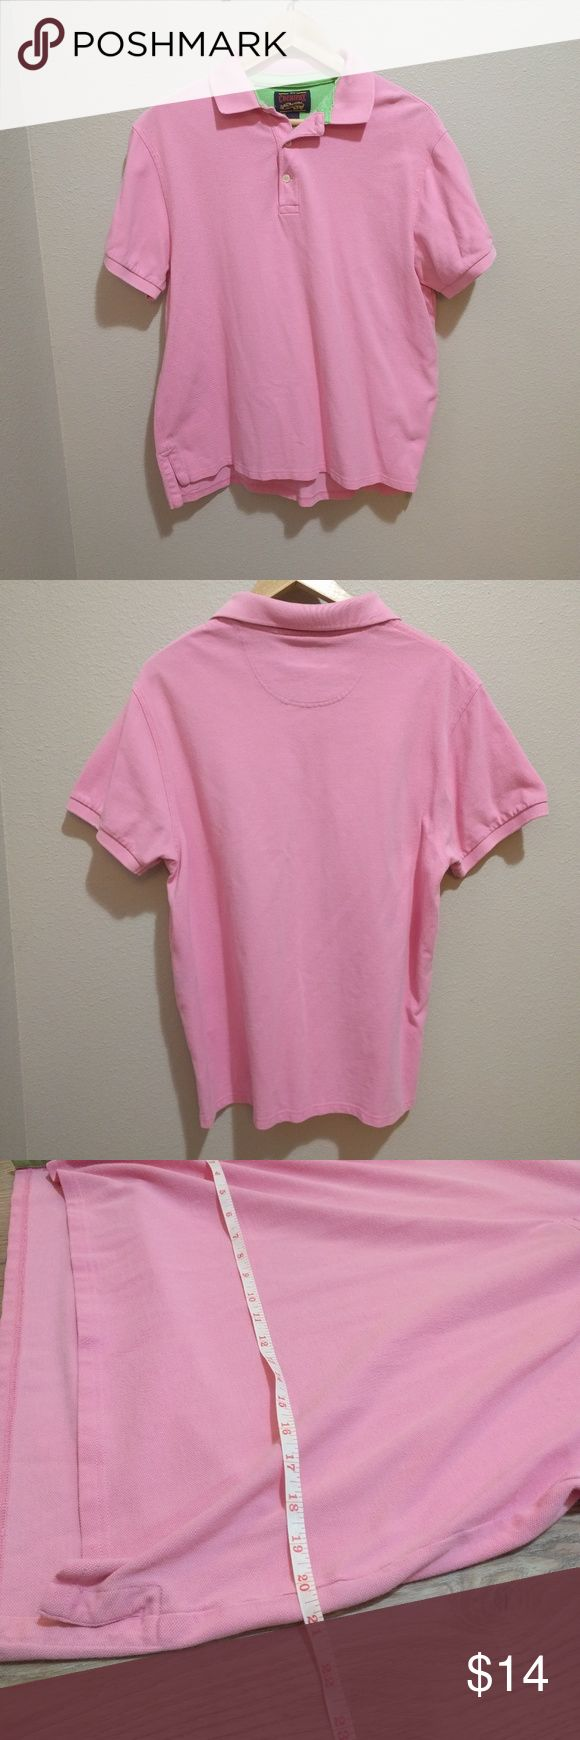 Men's Pink Polo Shirt Cremieux men's pink polo shirt in size large. Good condition. No rips or stains. Cremieux Shirts Polos